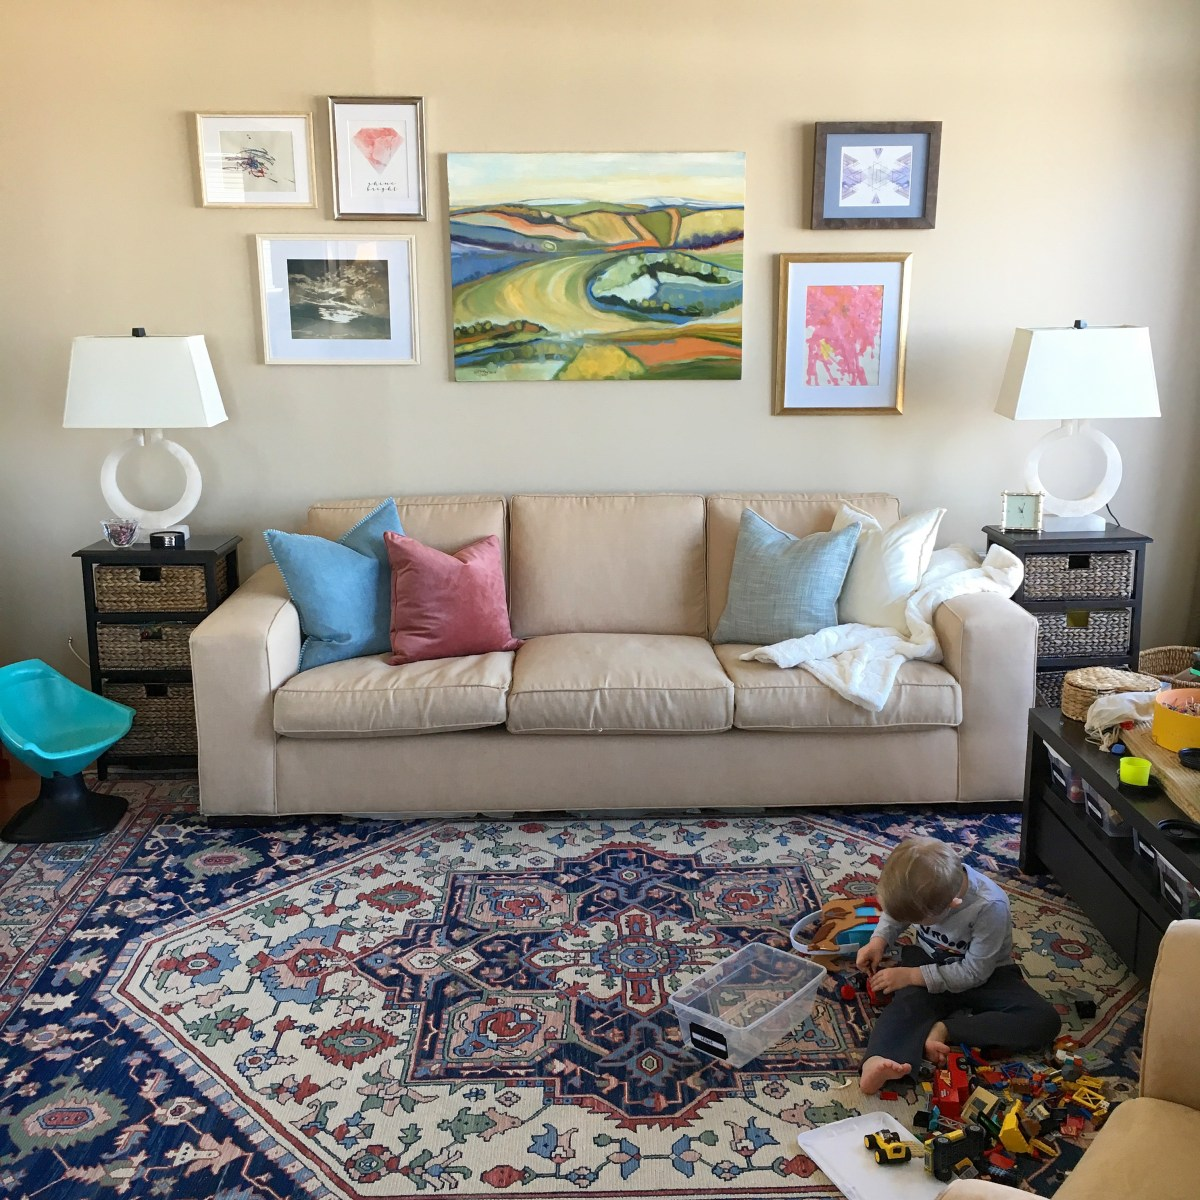 A gallery wall over a family room couch designed with lighter and brighter colors for the summer months